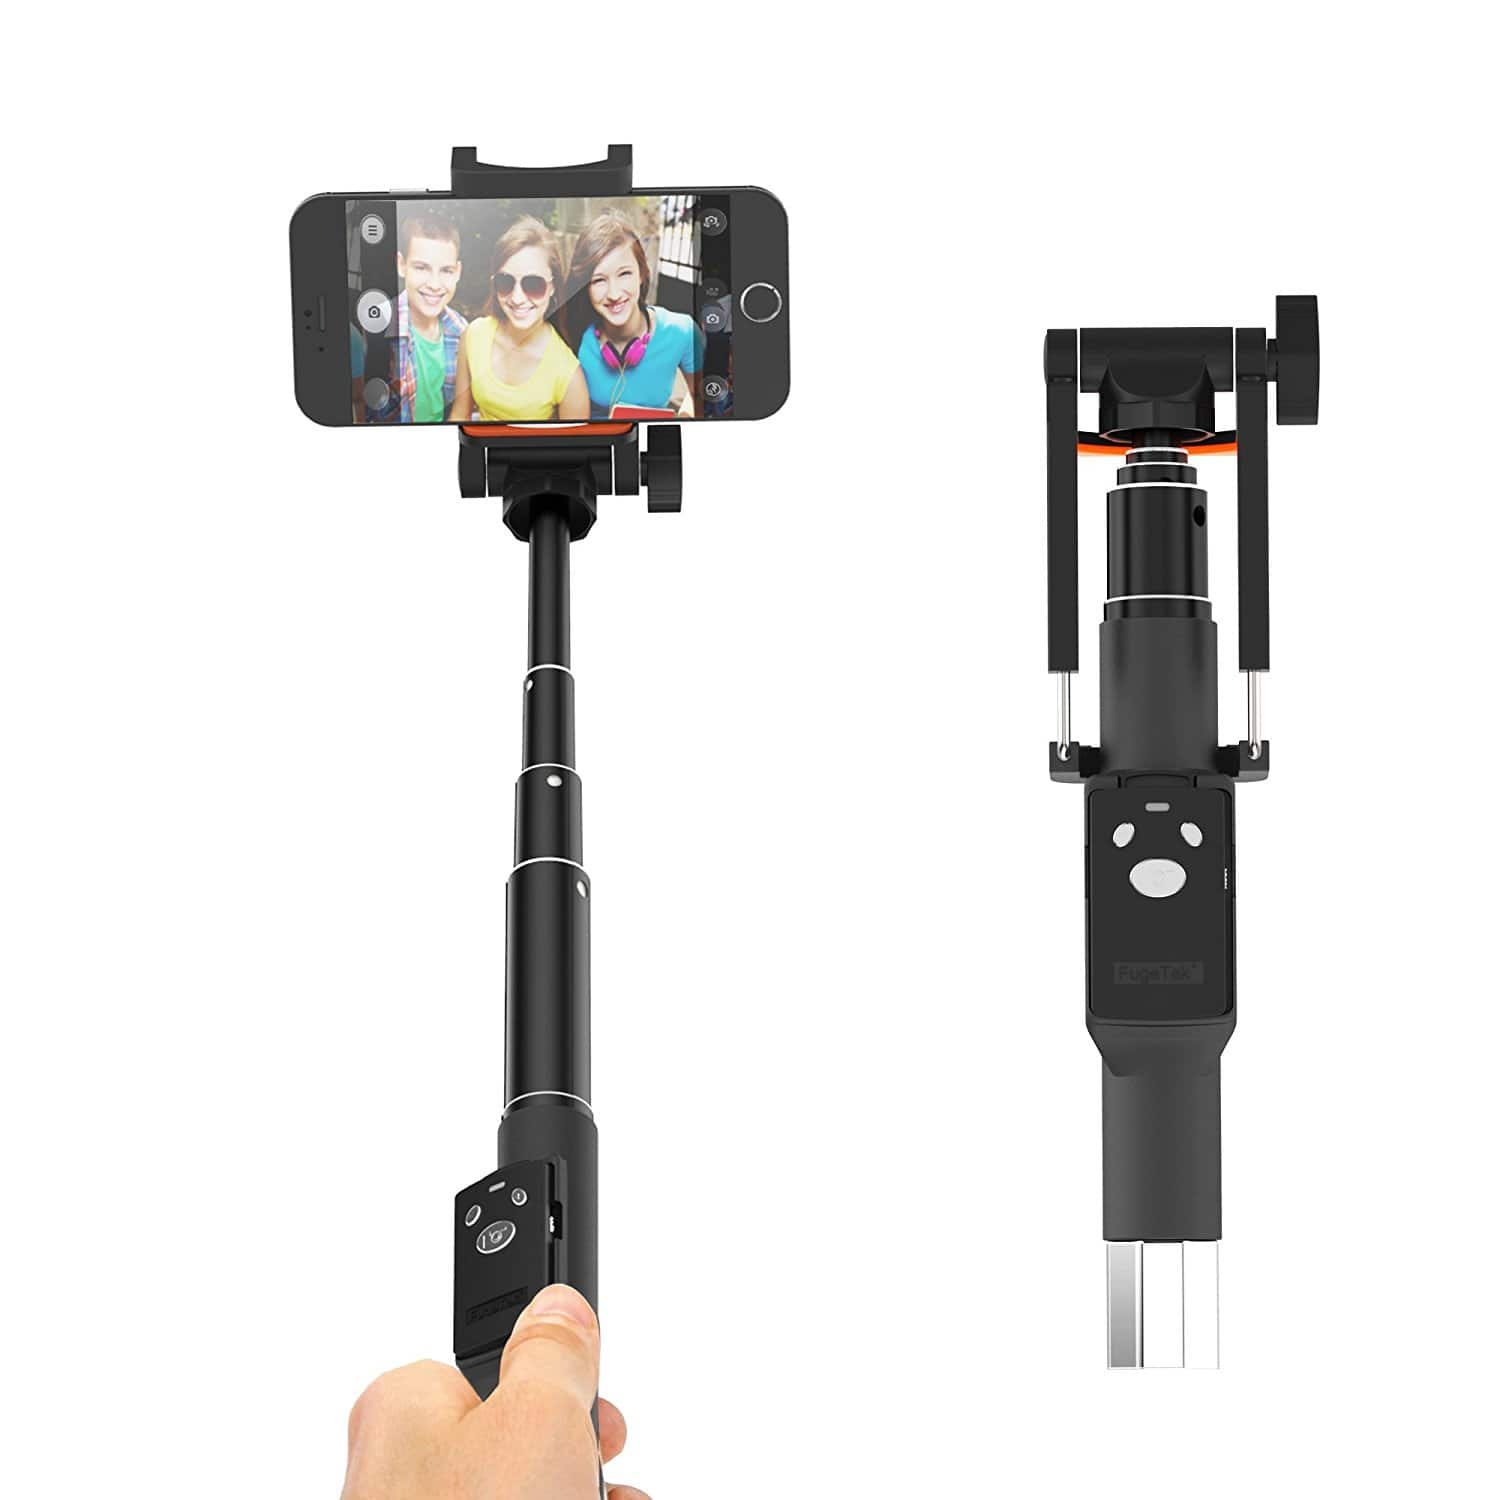 "32"" Professional Pocket Size Selfie Stick on amazon lightning deal $11.24"